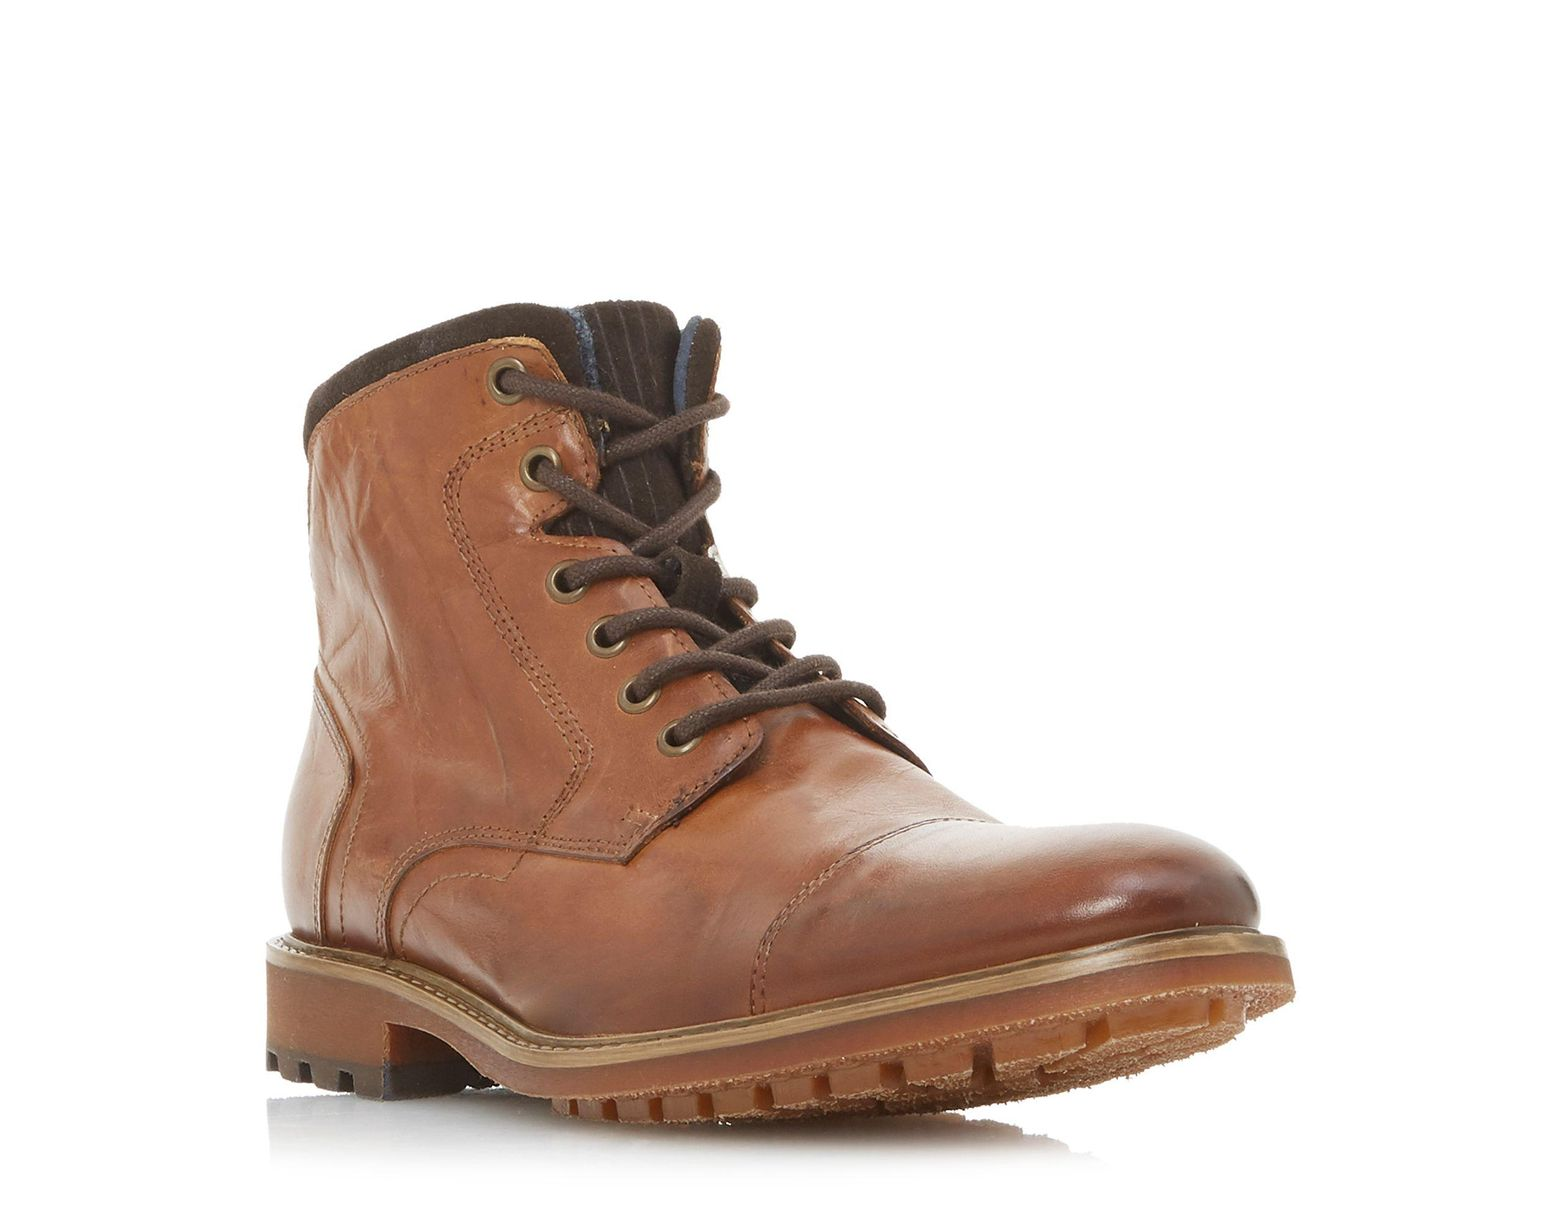 81aee67bdf3 Brown Men's 'chef' Toecap Lace Up Boots